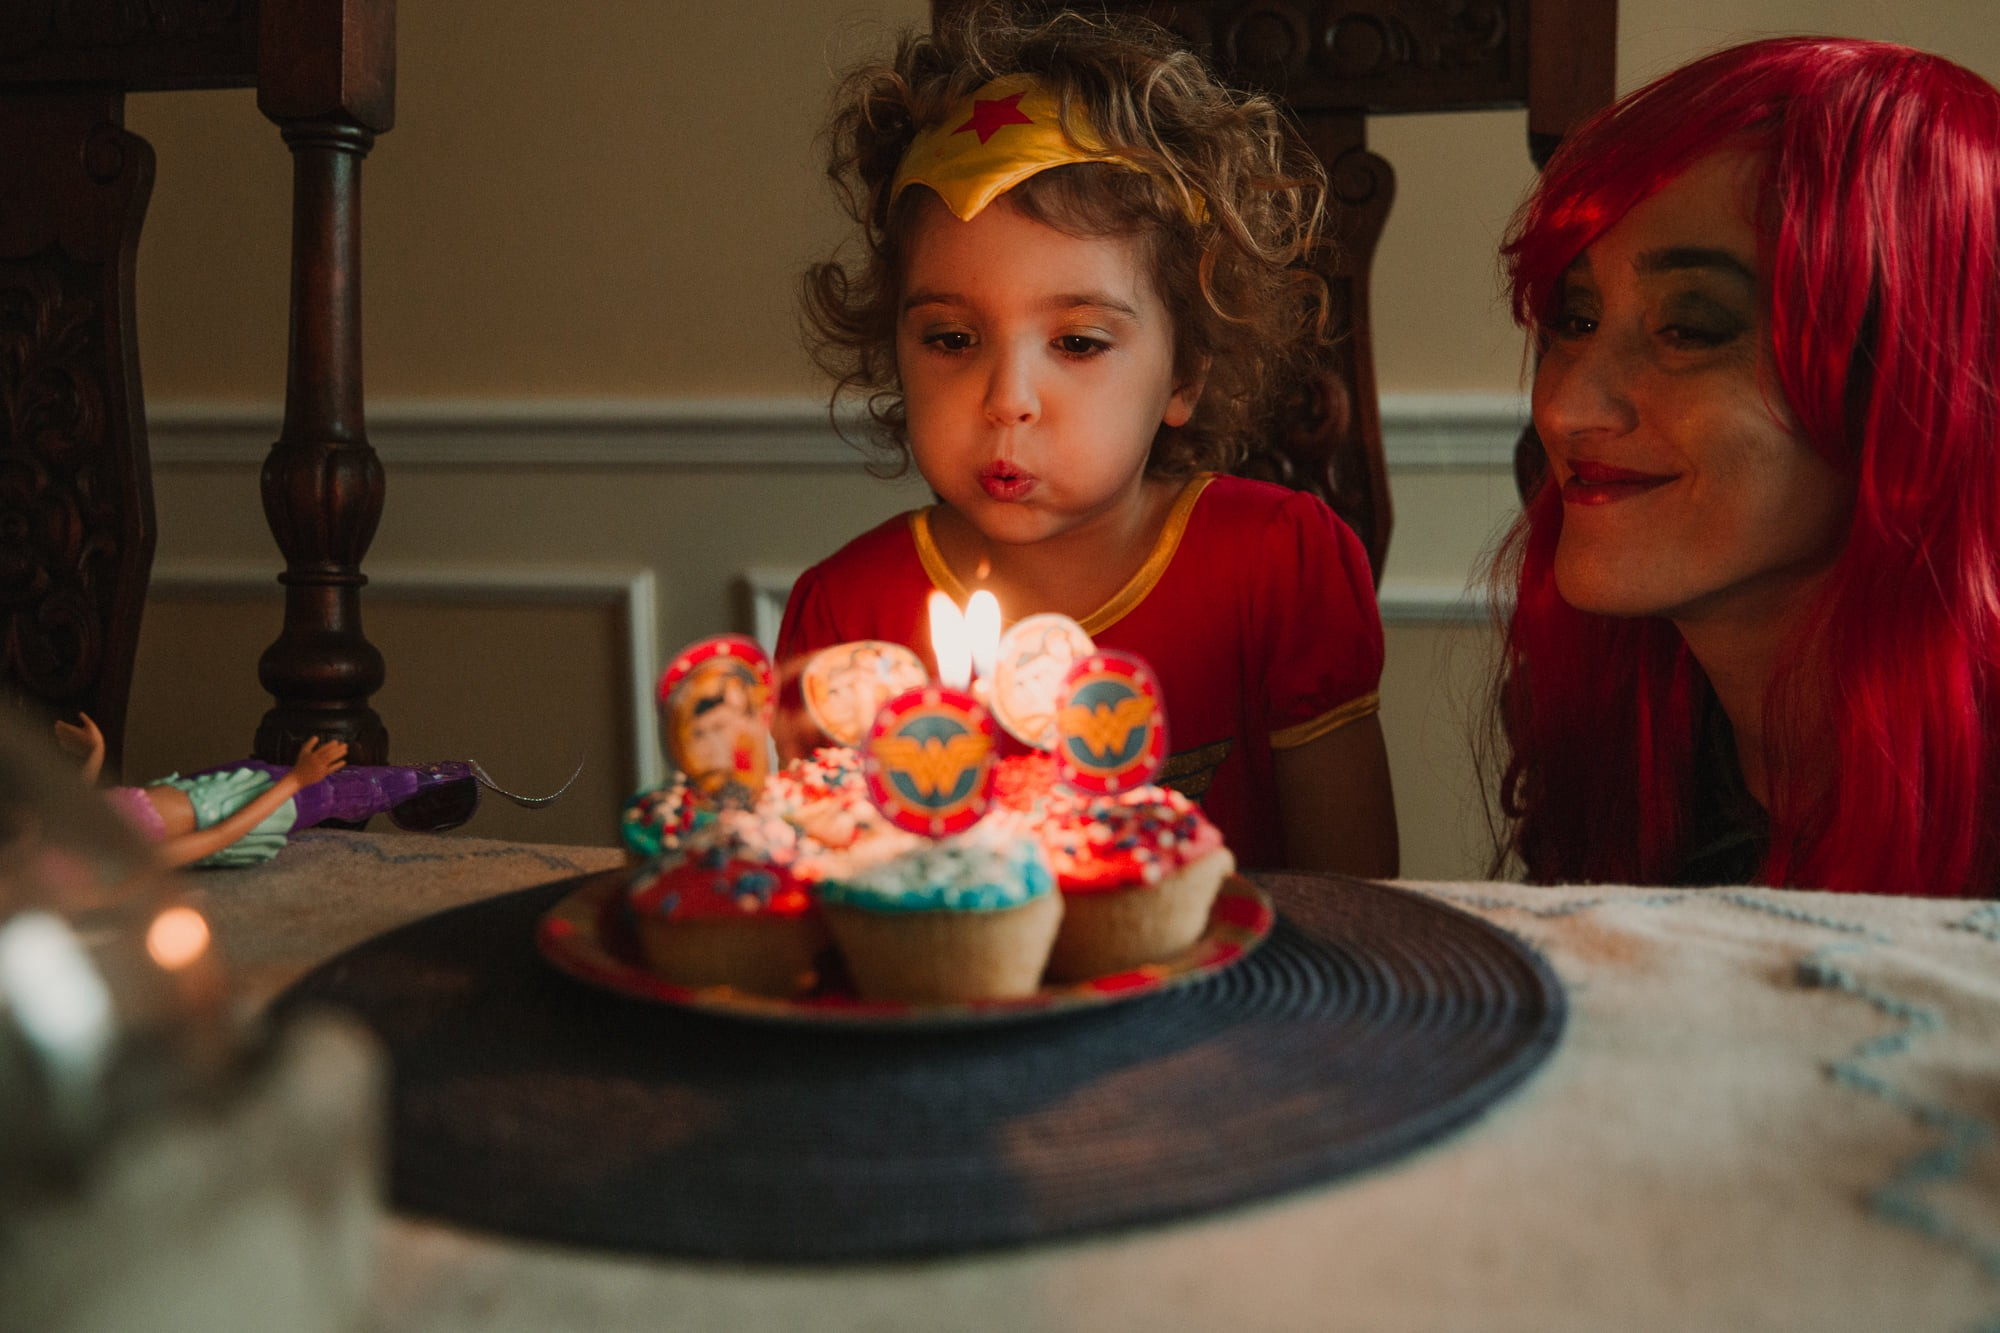 Little girl in a Wonder Woman costume blowing out candles on cupcakes. Mom in a shiny red wig crouched beside her, looking on